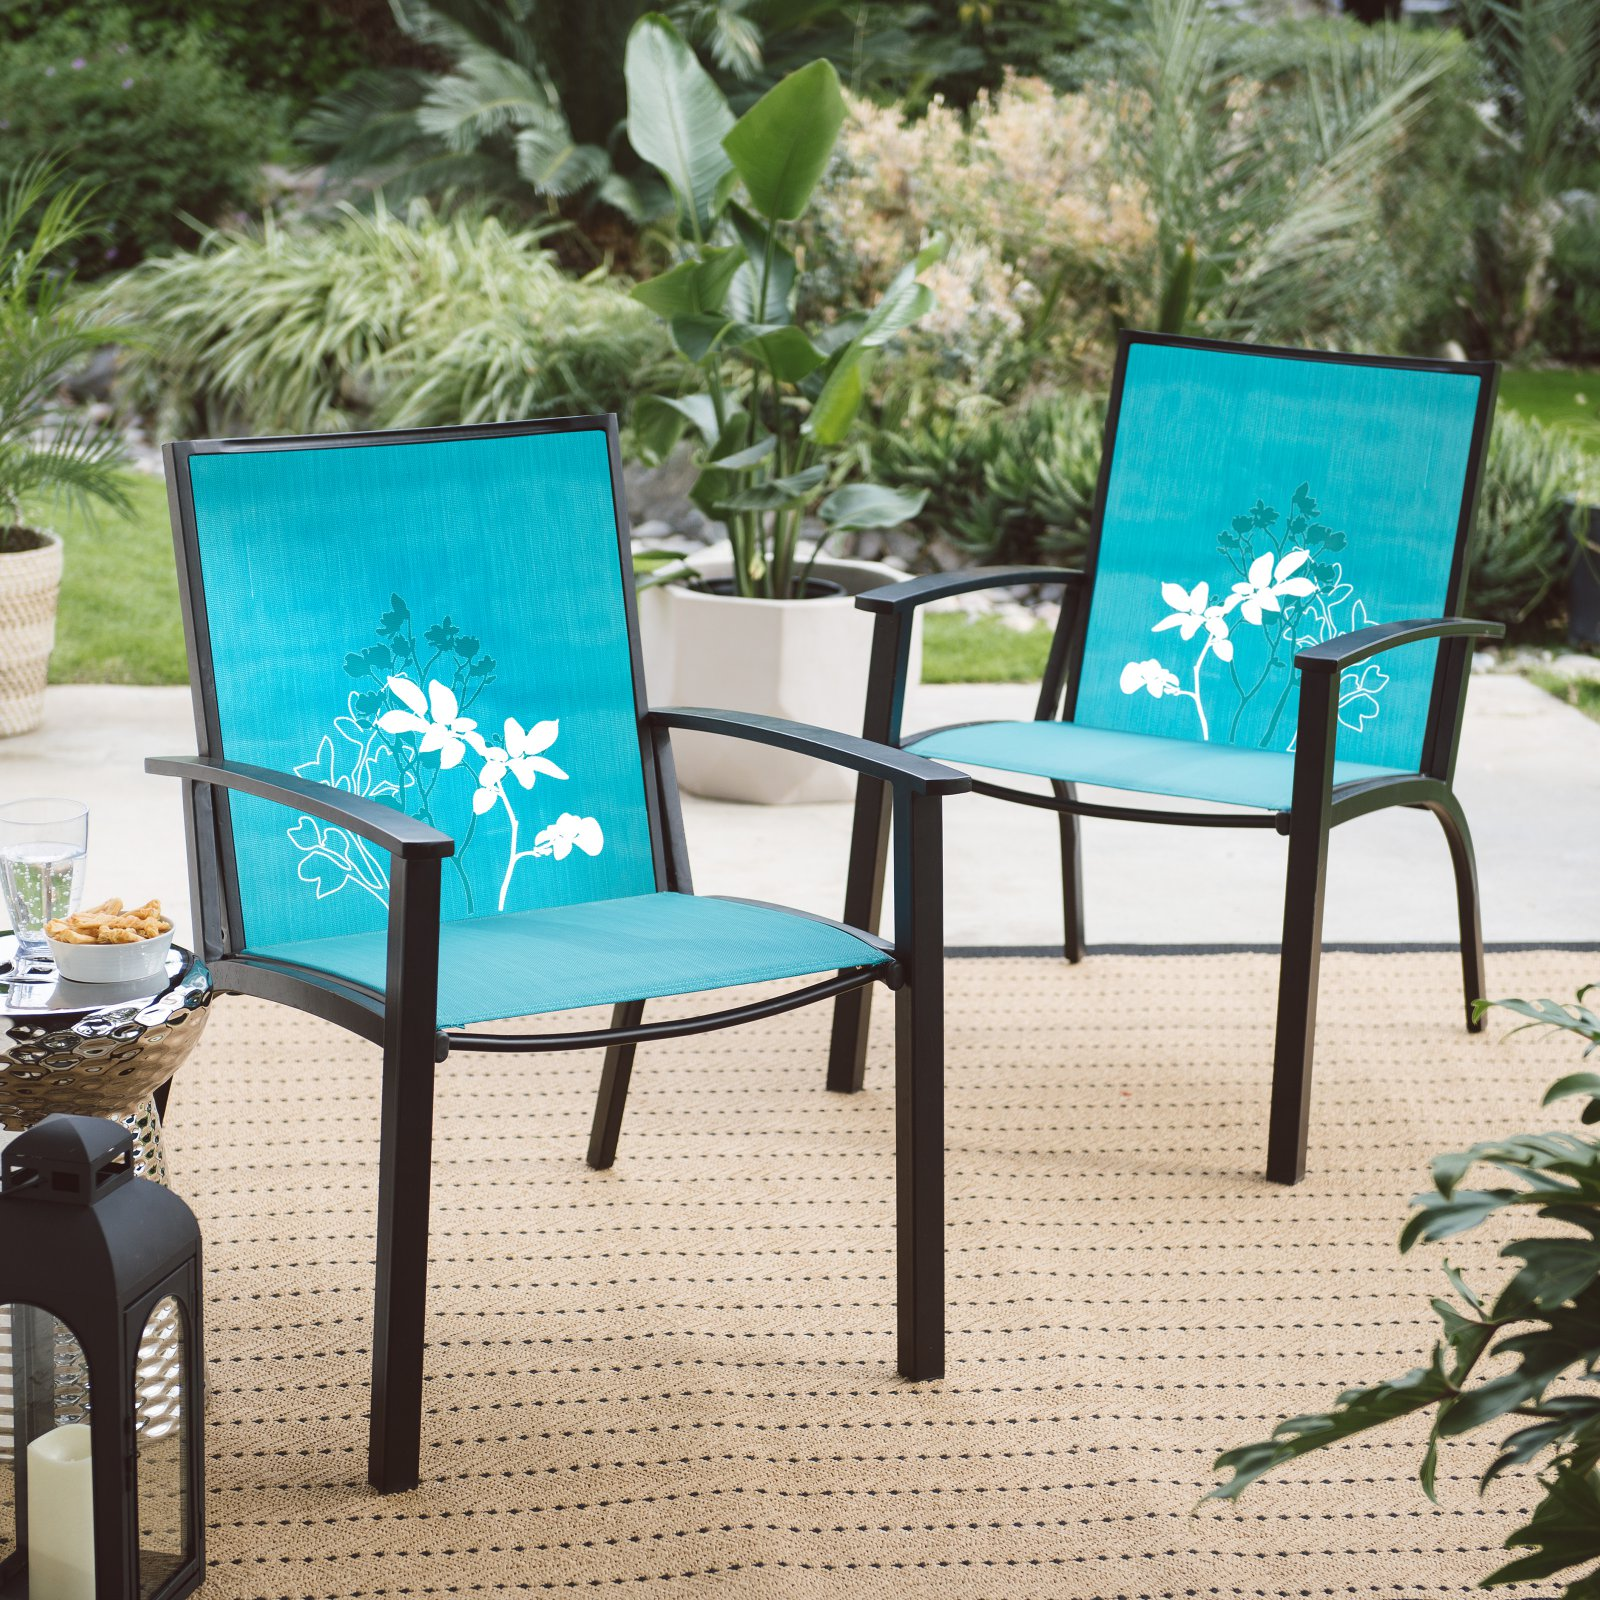 Coral Coast Darci Patio Sling Chair with Flower Print - Set of 2